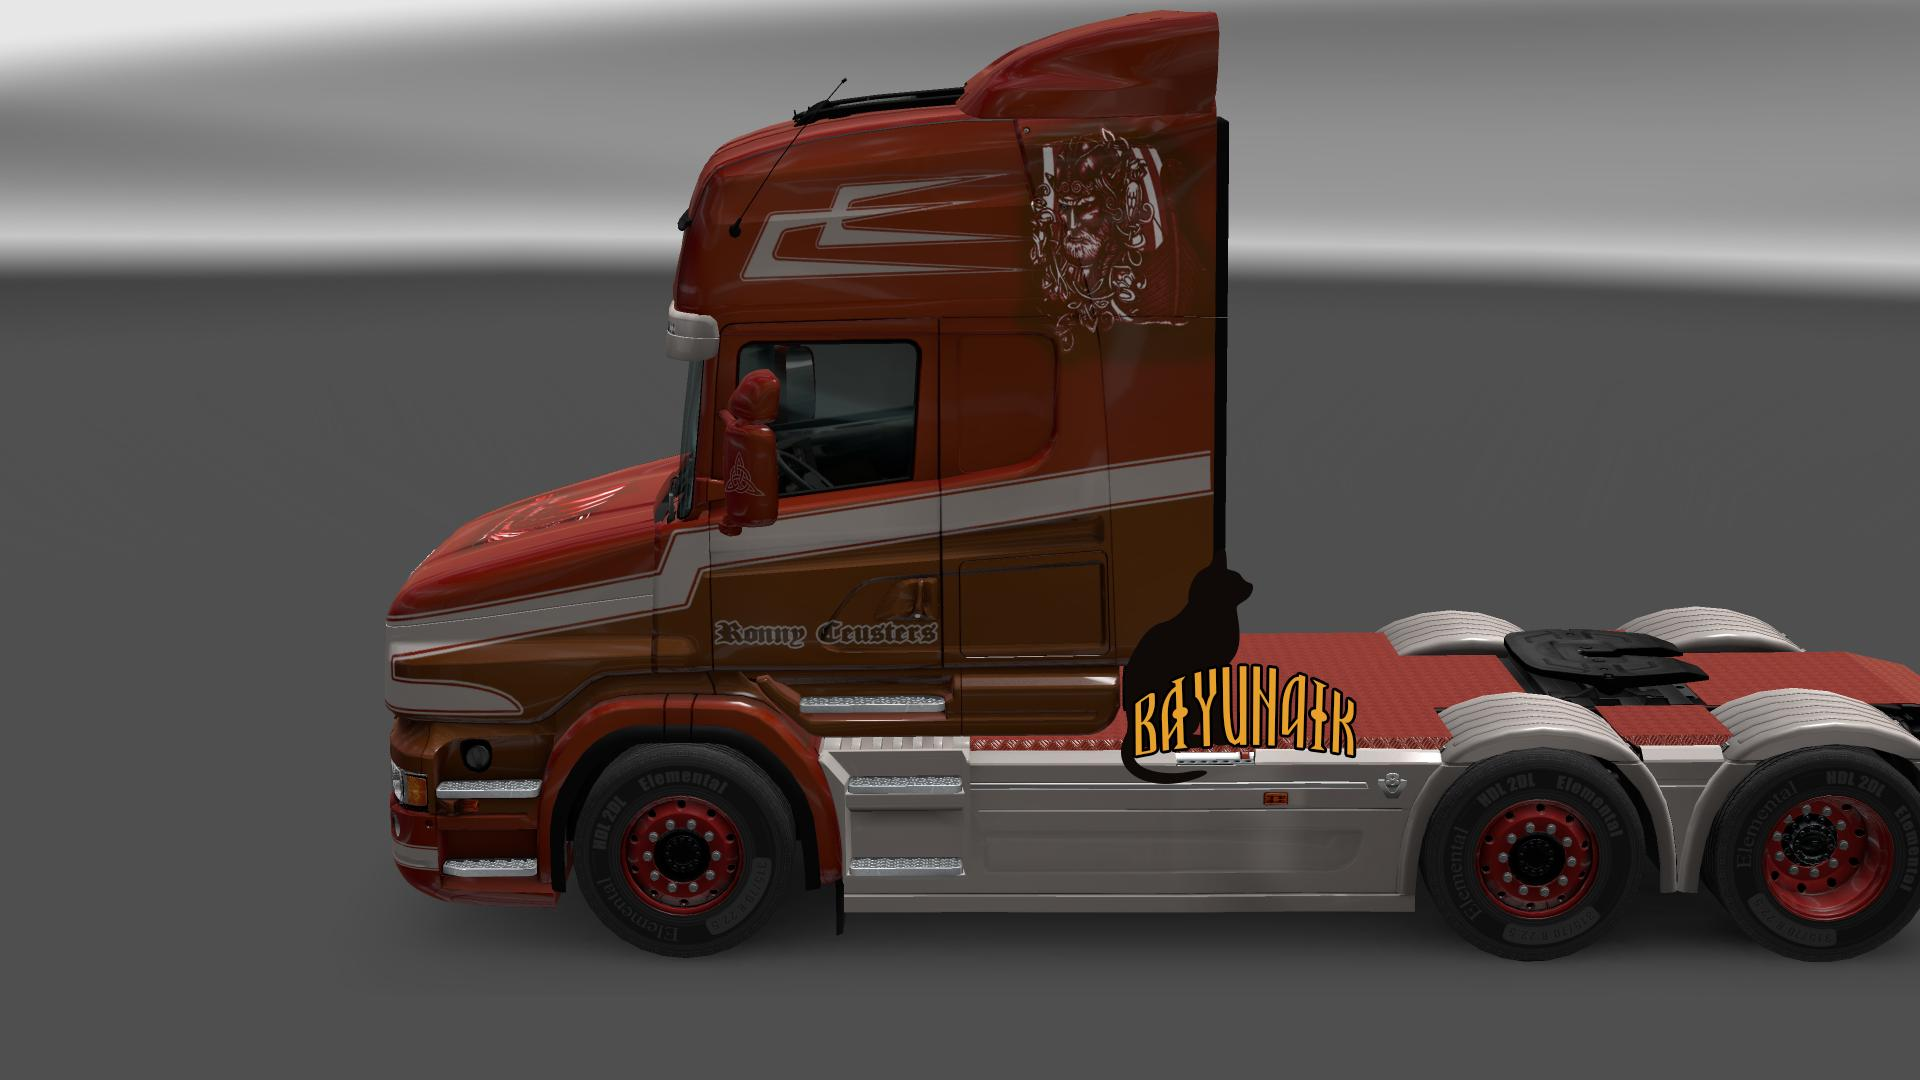 bart maps with Scania T Series Topline Ronny Ceusters Skin 1 24 on 666223 likewise OmgevingDuits likewise Scania T Series Topline Ronny Ceusters Skin 1 24 moreover 56821828 besides Van Gogh And Co.